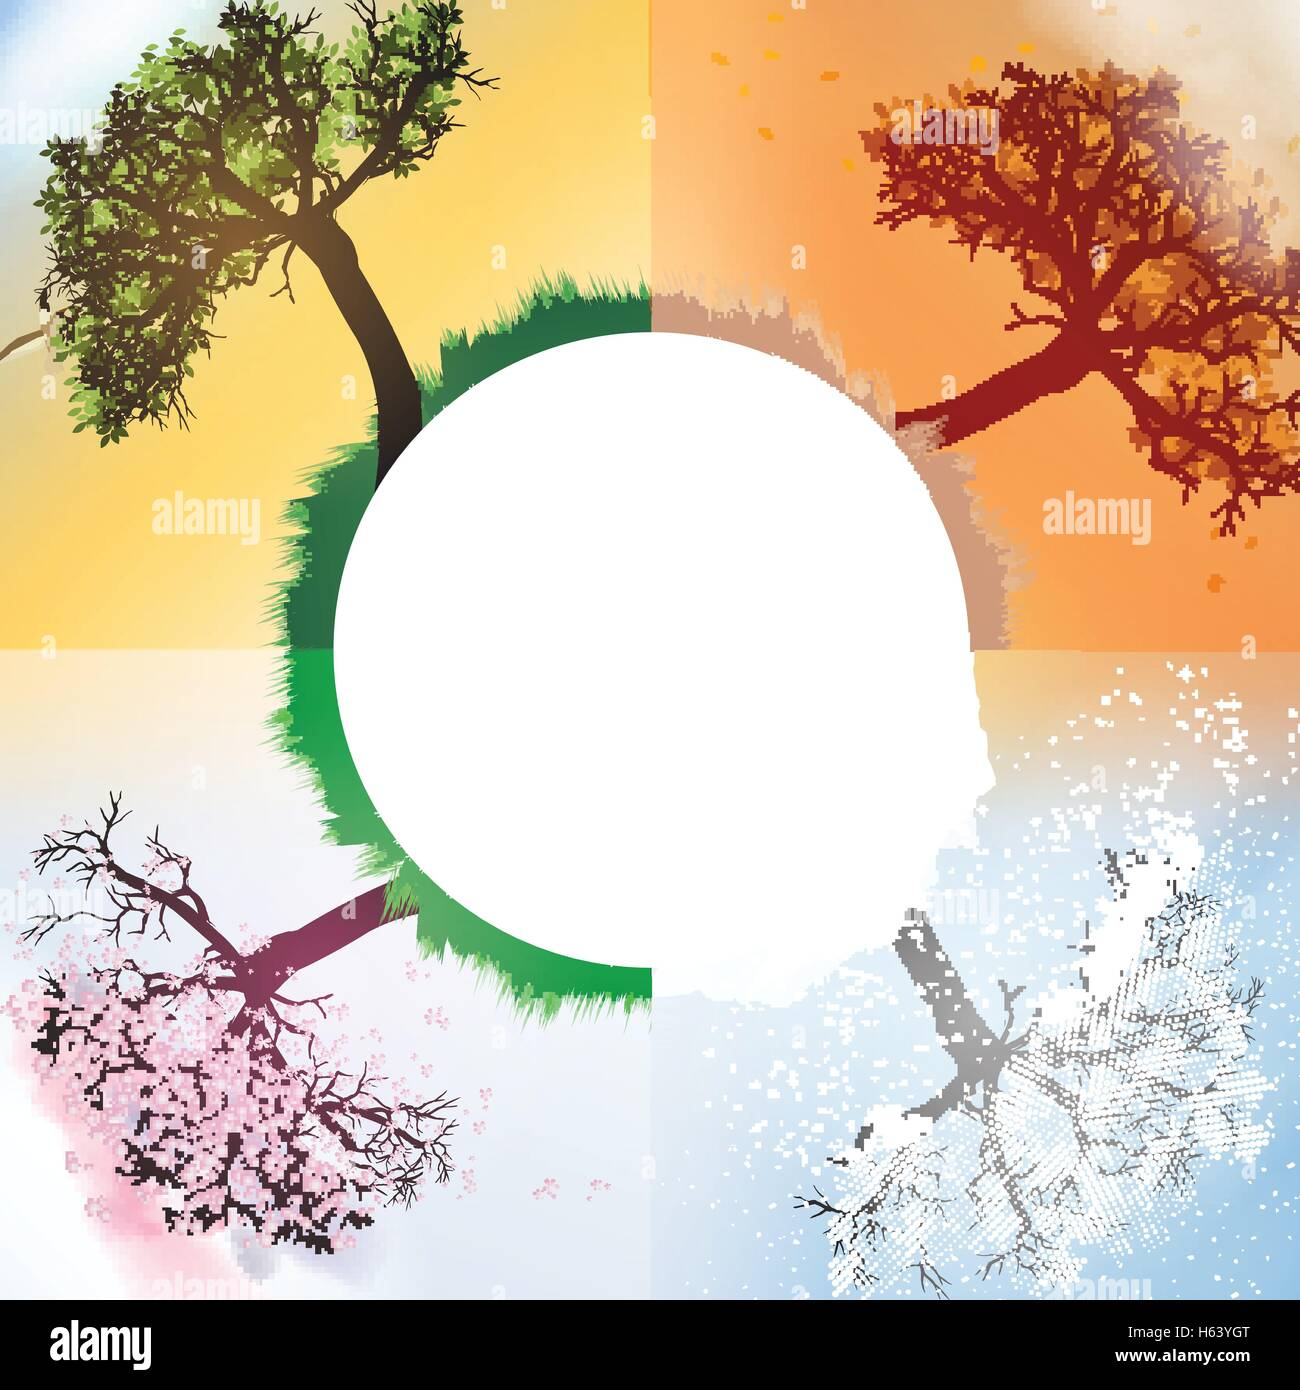 Four Seasons Spring, Summer, Autumn, Winter Banners with Abstract Trees - Vector Illustration - Stock Image